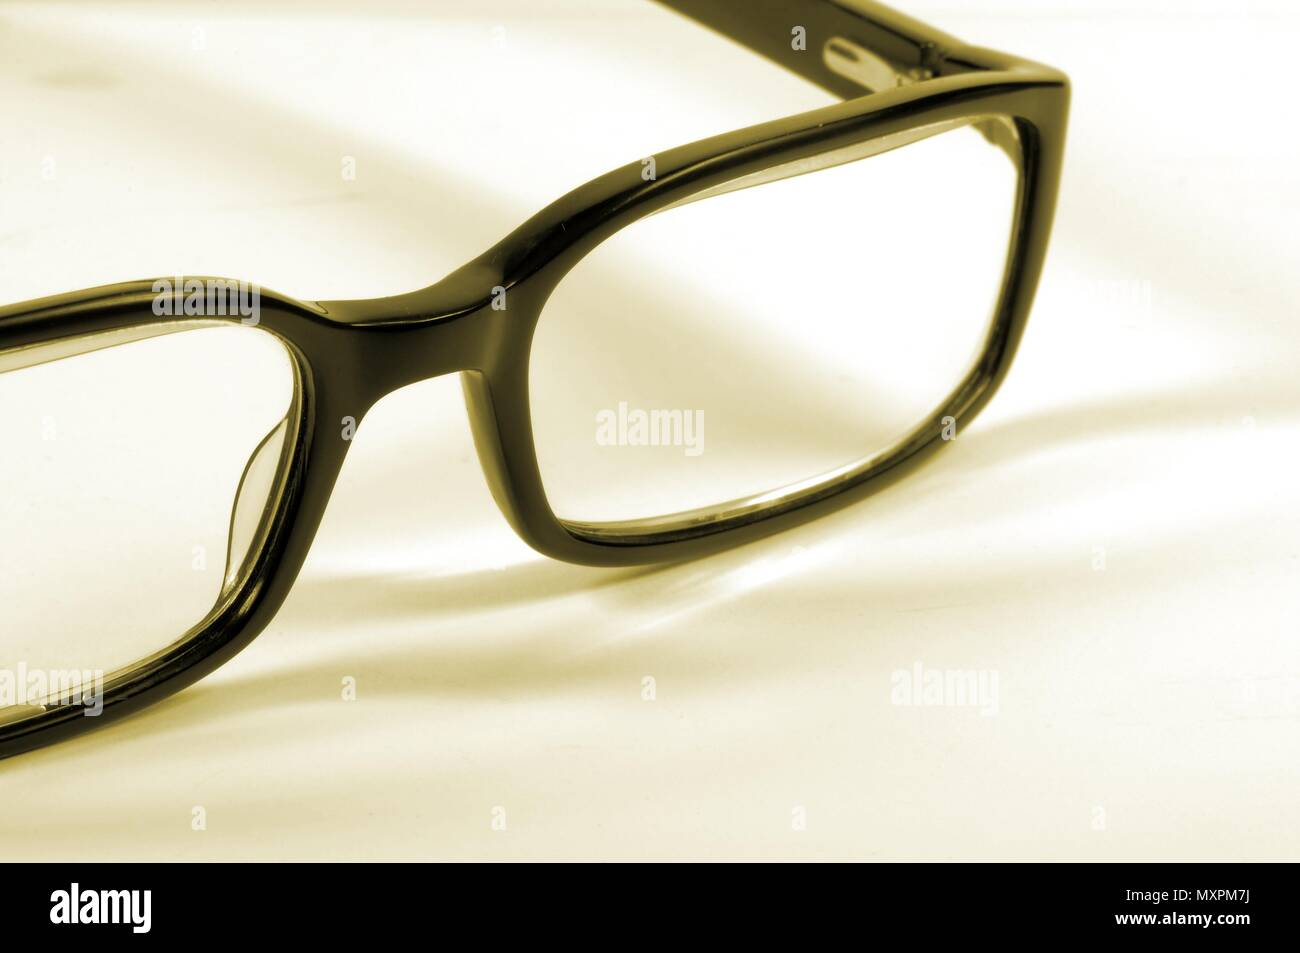 Black fashion reading glasses on white background. - Stock Image